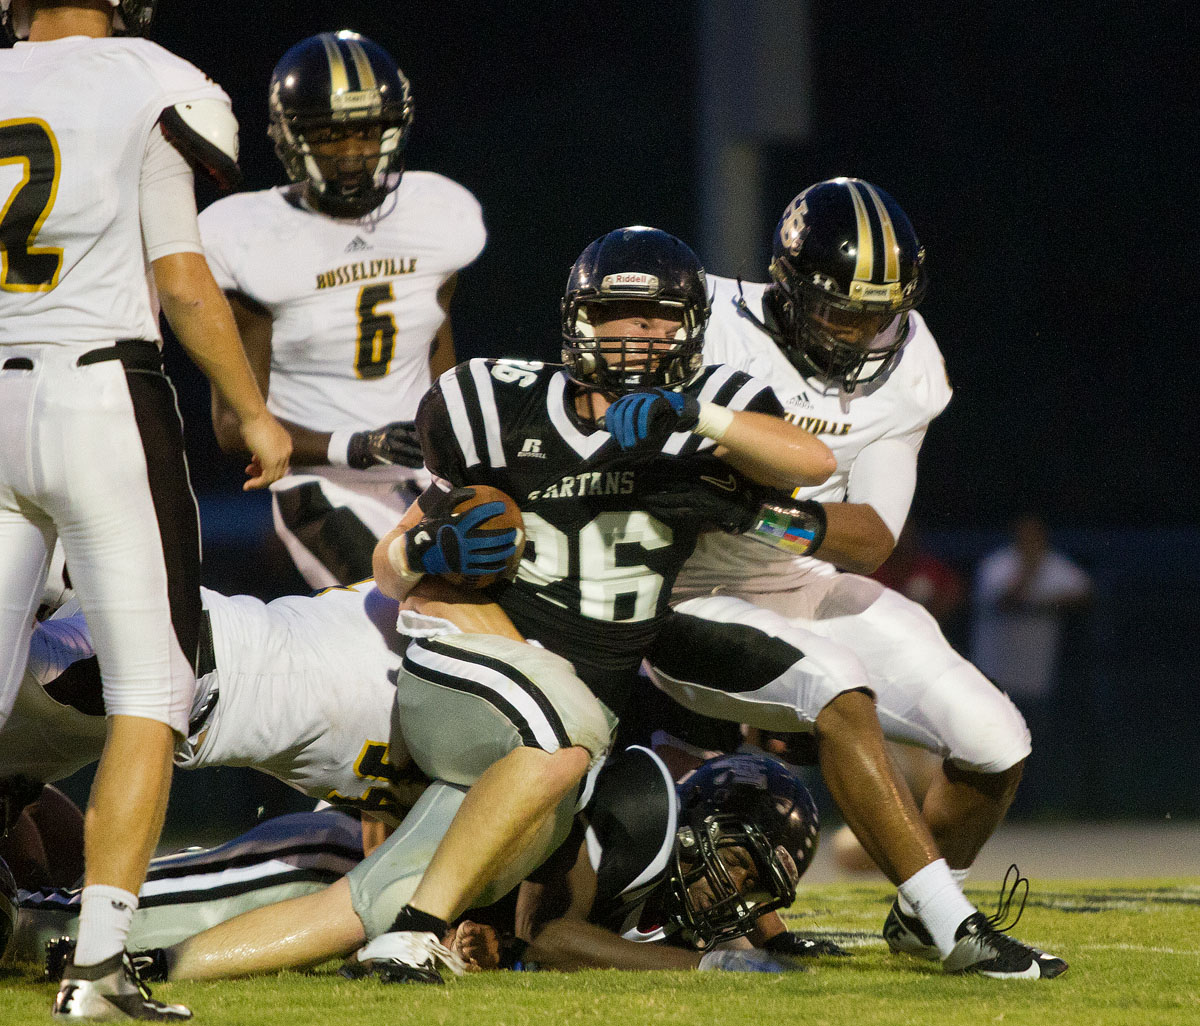 South Warren junior Drew Wilken is pulled down with the ball during a game between South Warren and Russellville Sept. 7 at South Warren High School. South Warren beat Russellville 20-0.